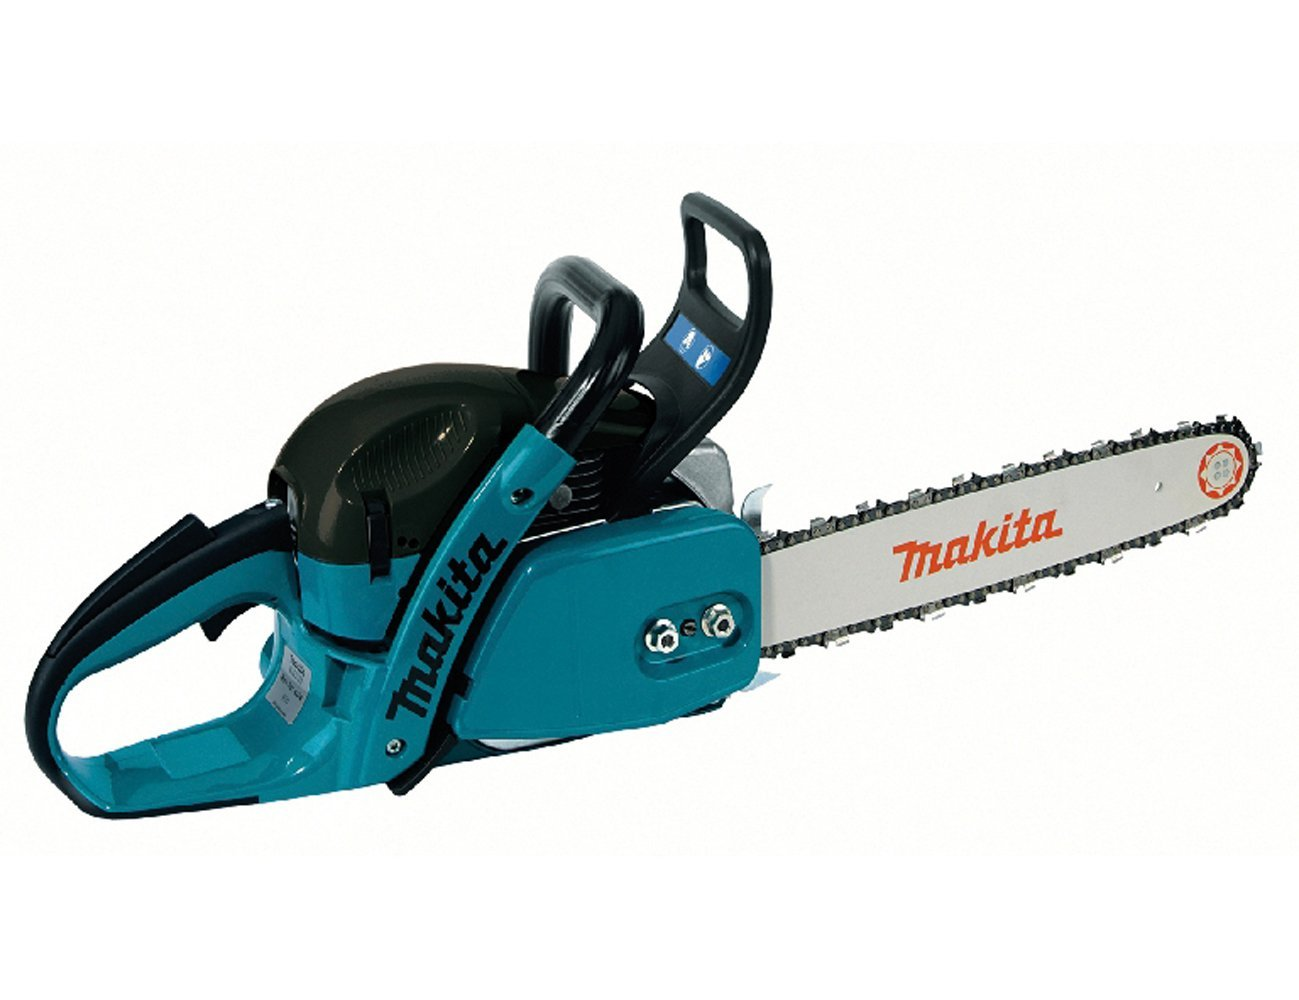 Makita Petrol Chainsaw DCS4630-38 blue DCS4630-38